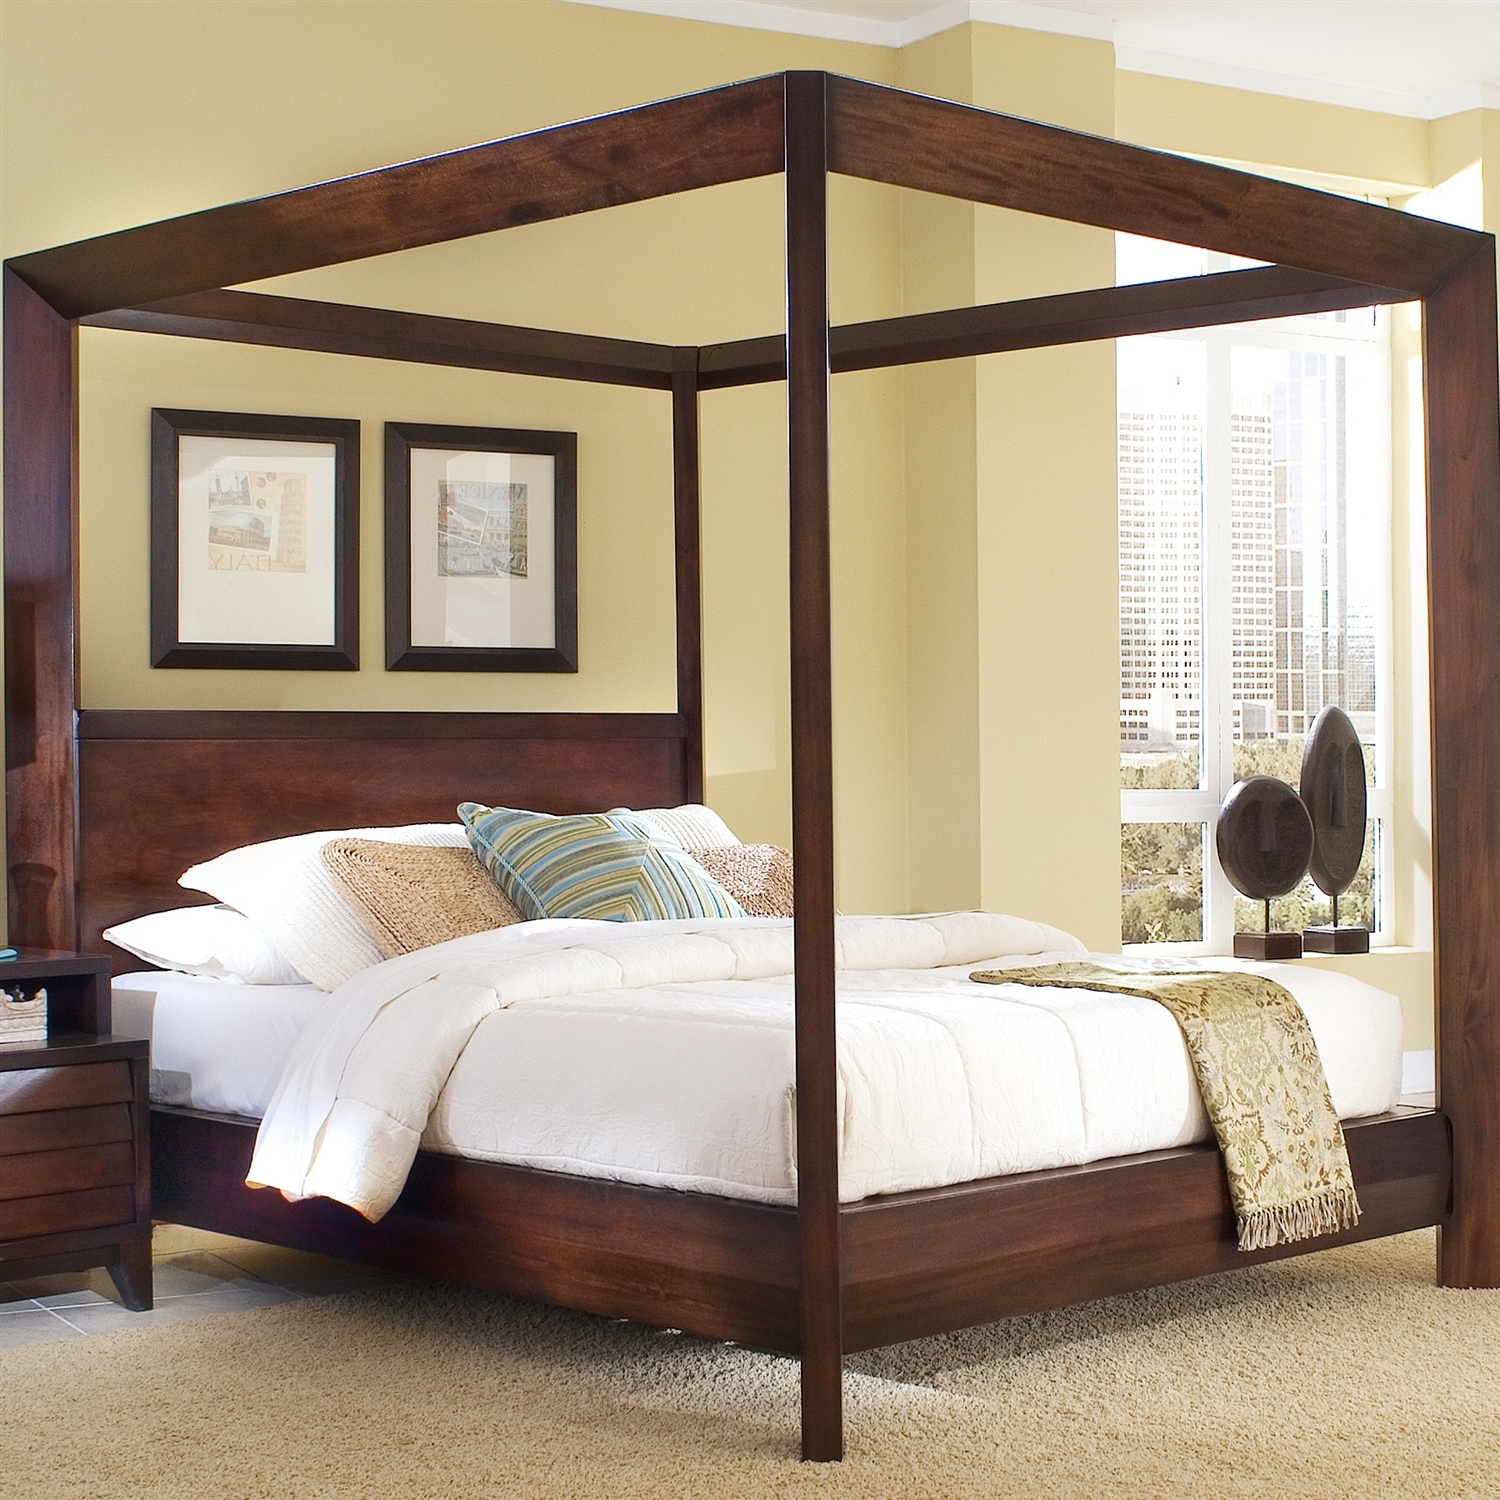 Queen Size Canopy Bed Frame Woodqueen size wood canopy bed frames amys office